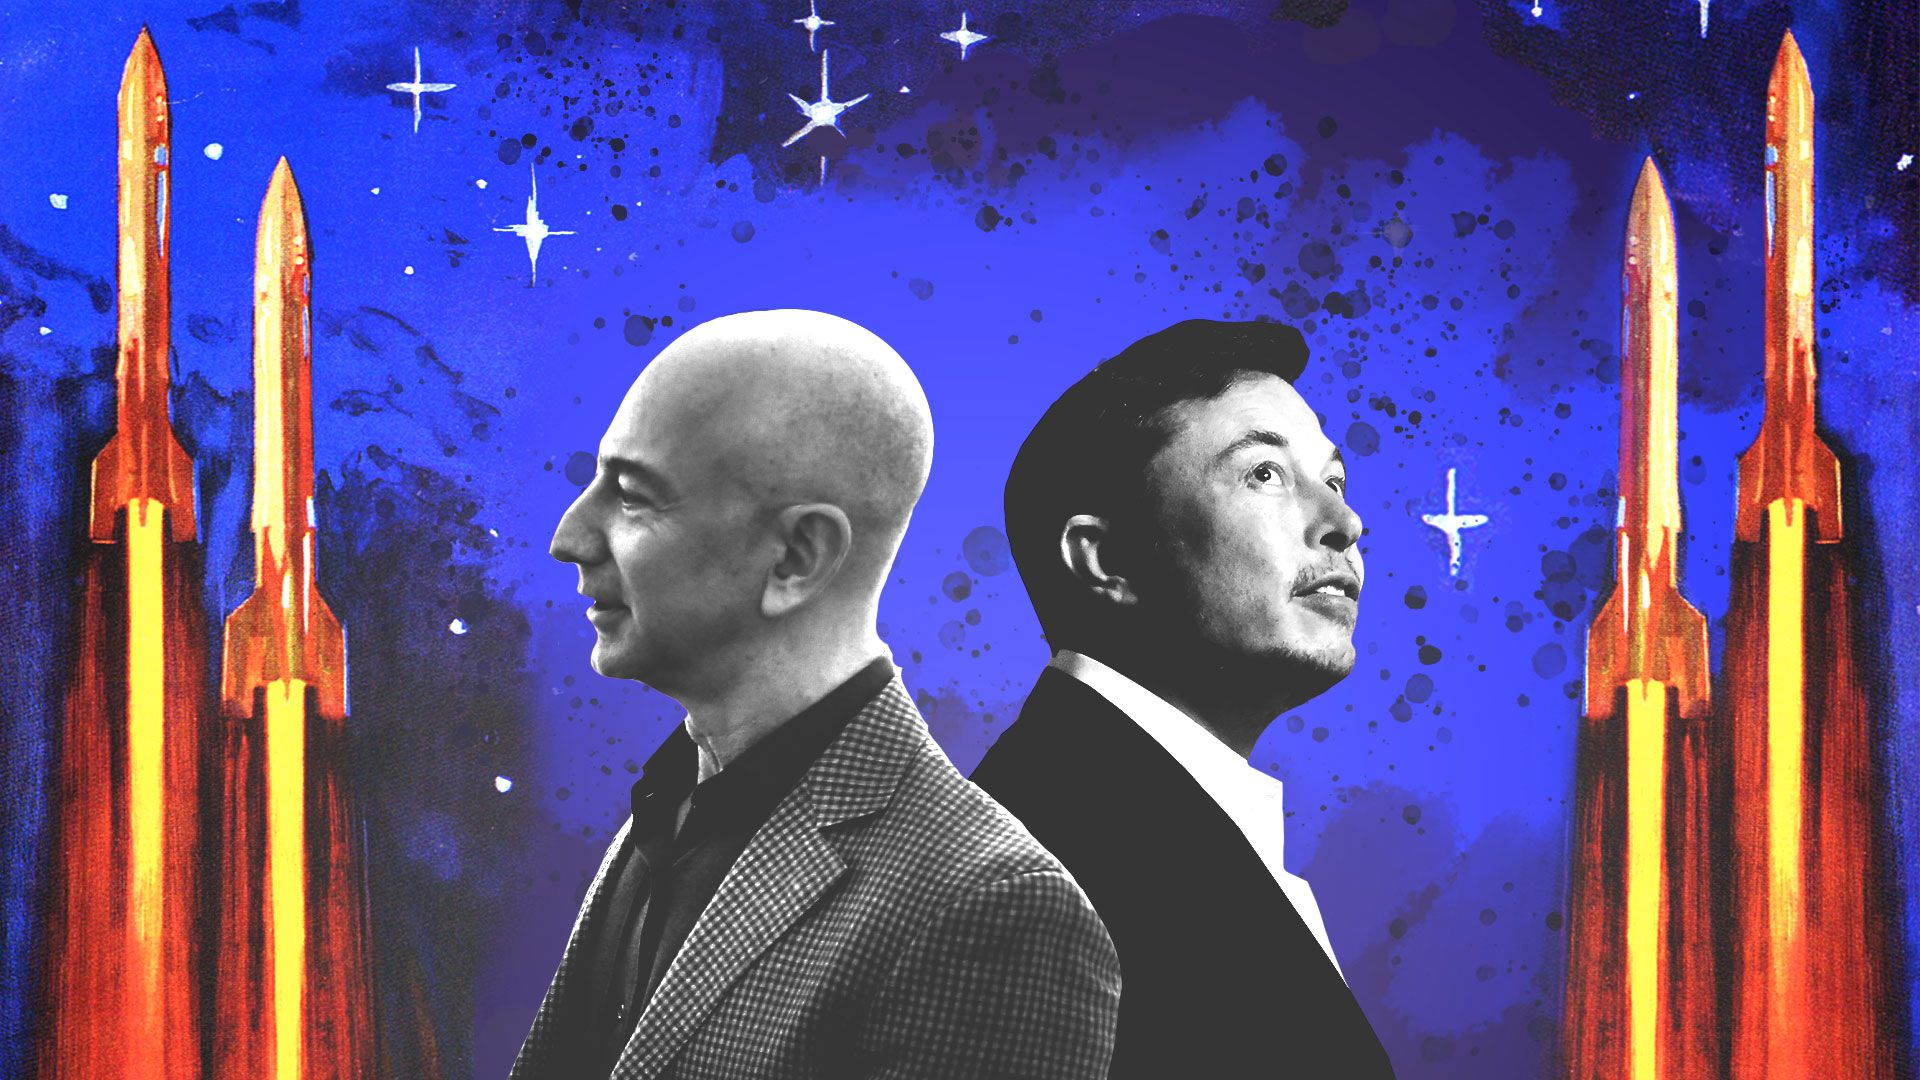 Jeff Bezos and Elon Musk eye the next phase of their space age rivalry